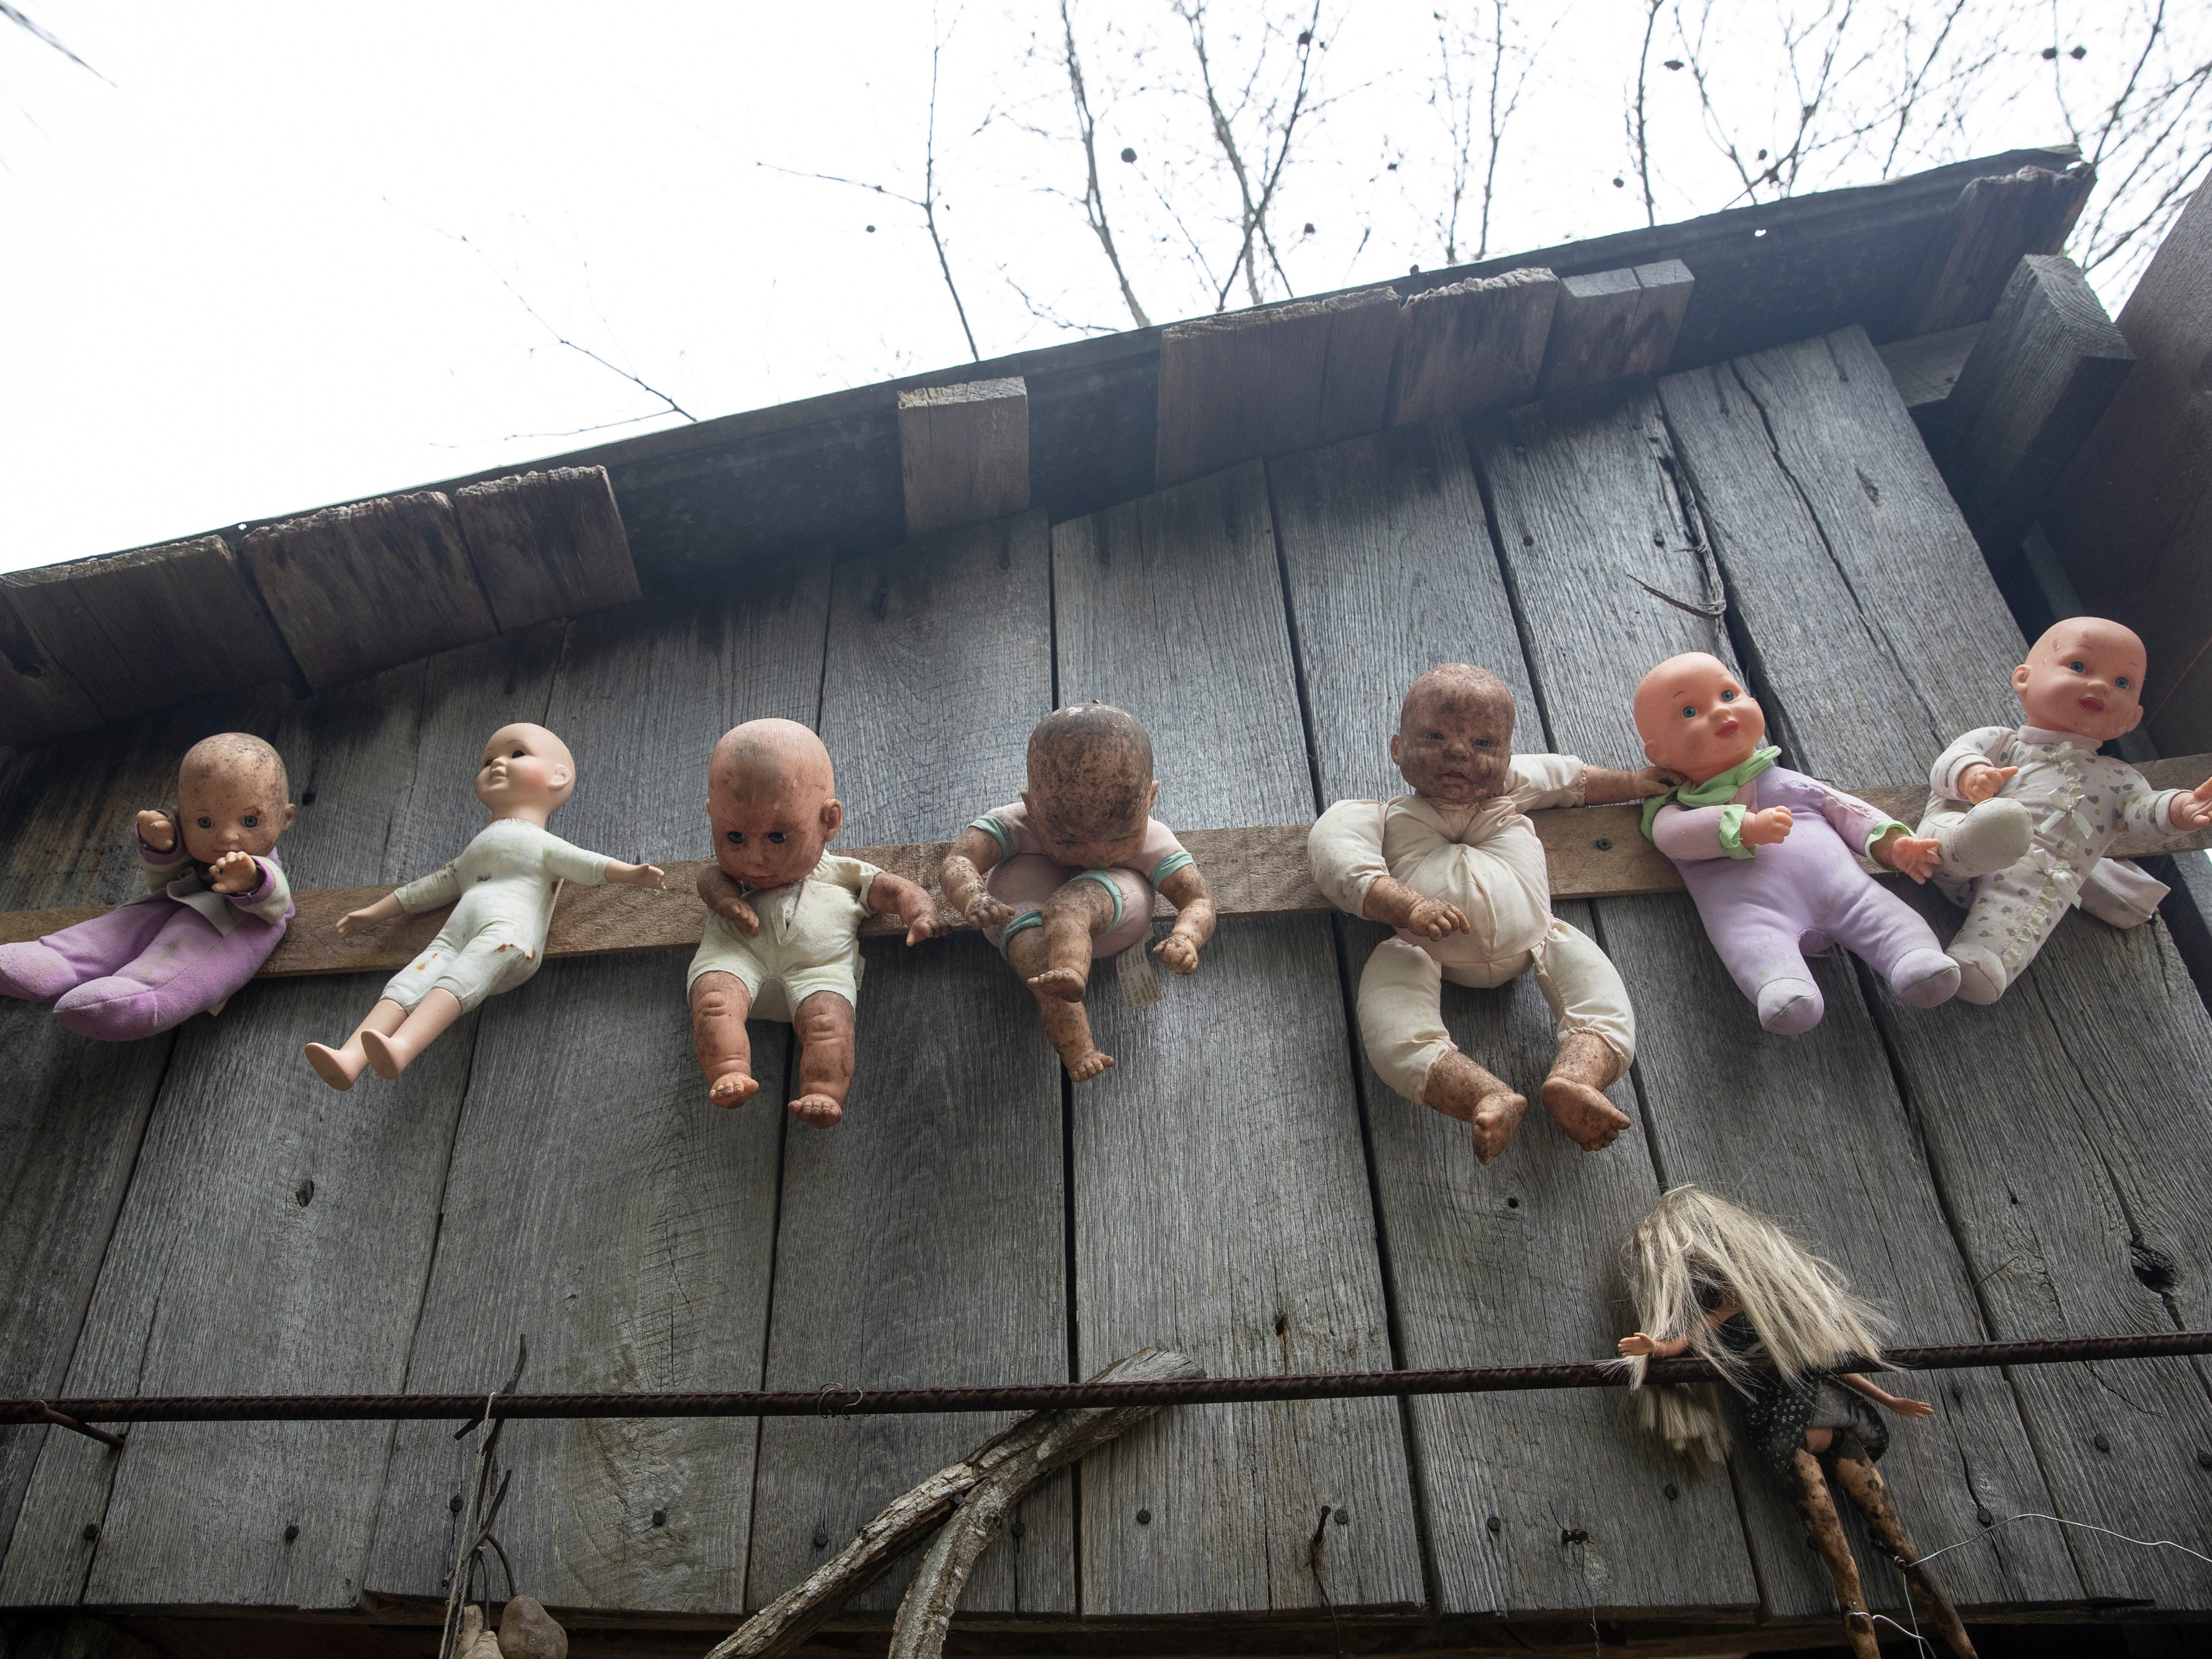 A collection of baby dolls decorate the side of a building at the Home for Wayward Babydolls. April 19, 2019